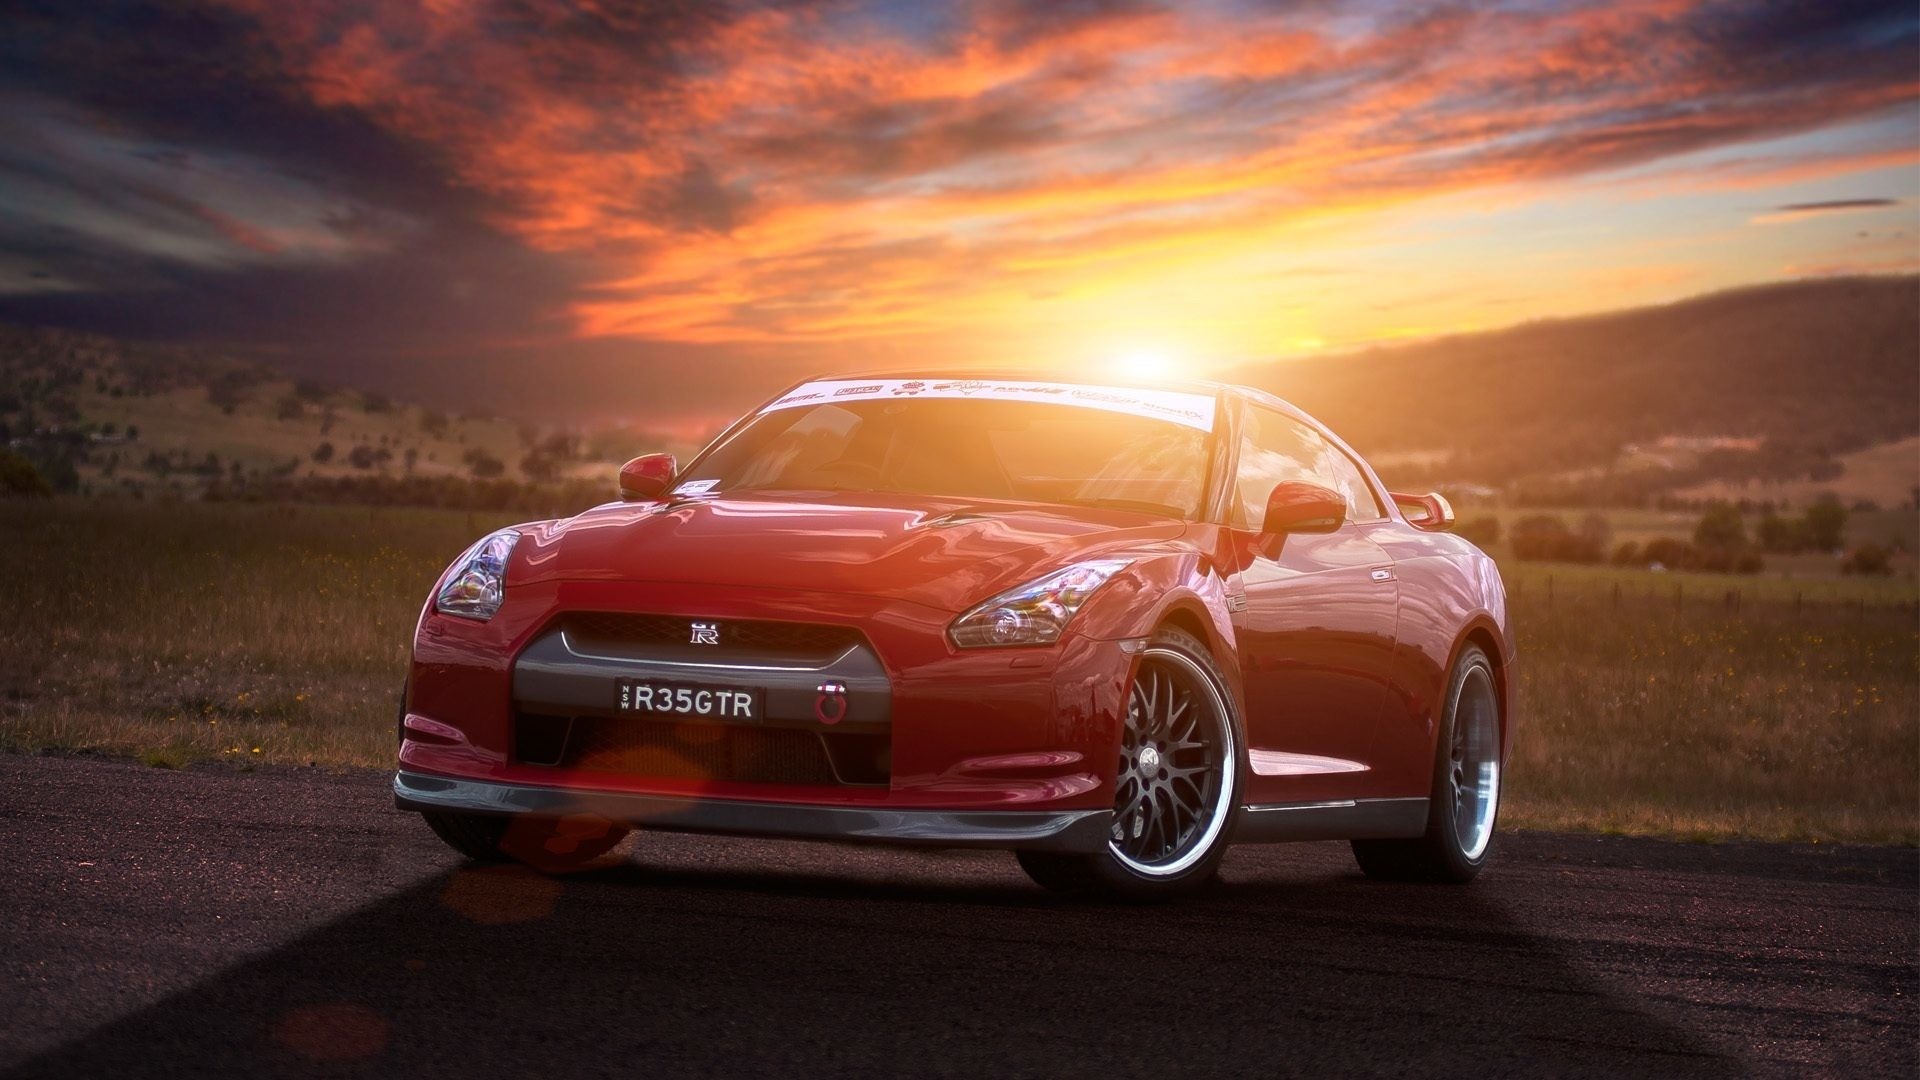 Nissan GT-R R35 red supercar at sunset 4k HD wallpaper